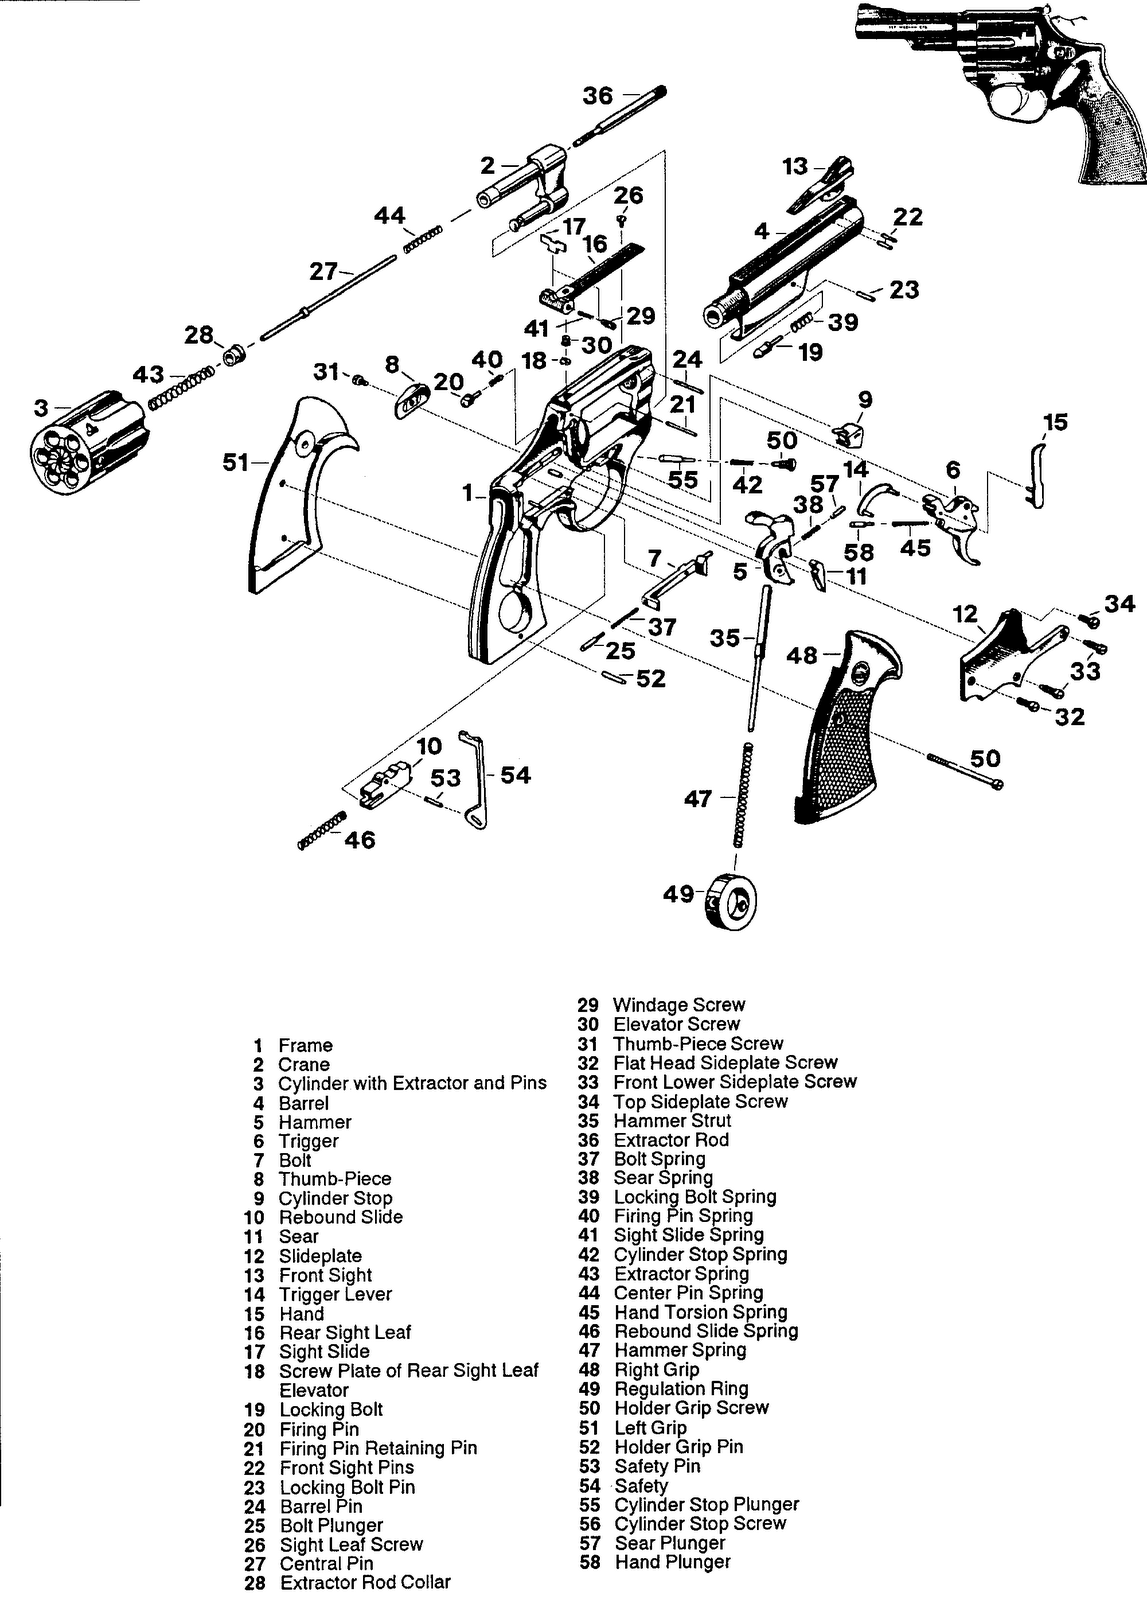 taurus model 66 parts diagram